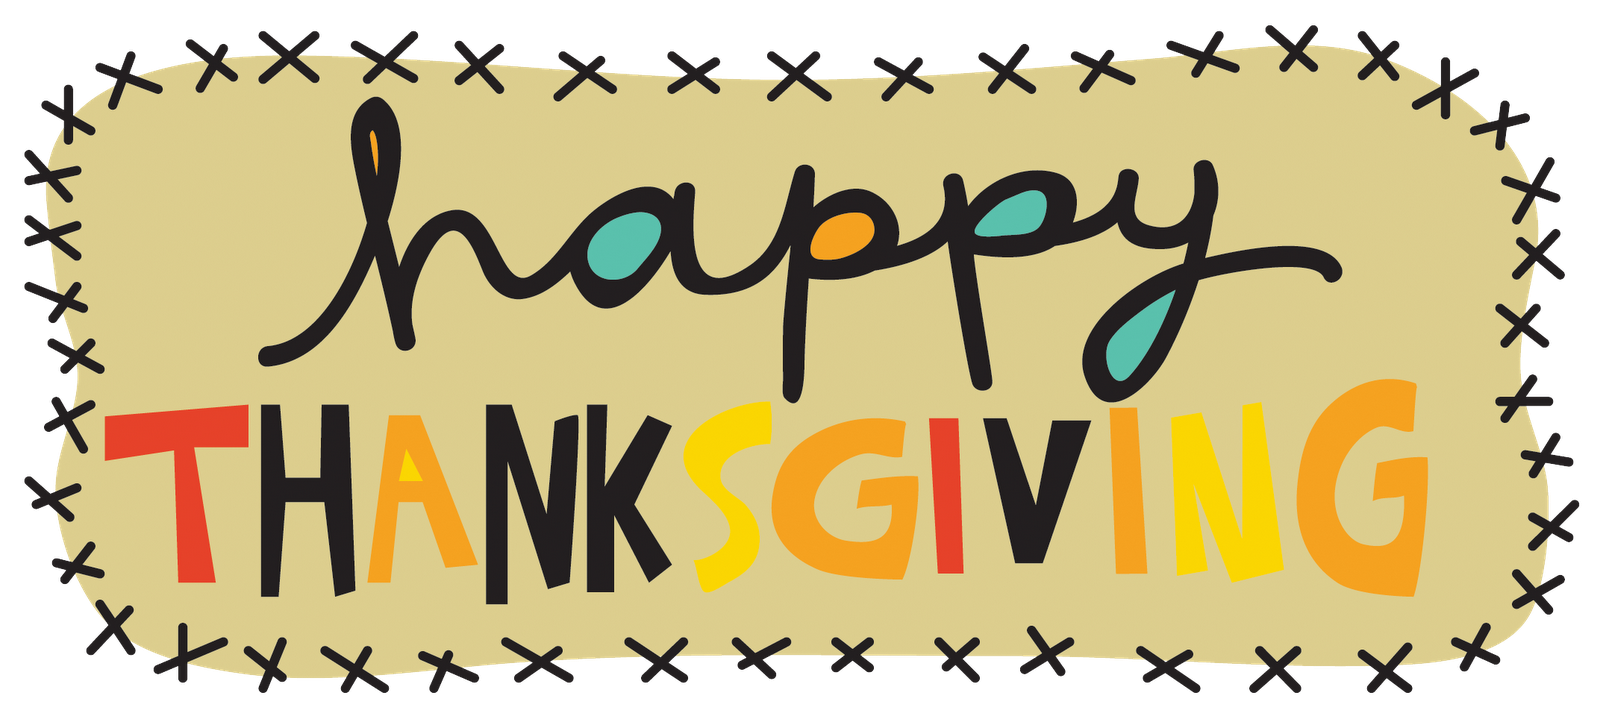 1600x716 Collection Of Happy Thanksgiving Clipart Transparent High